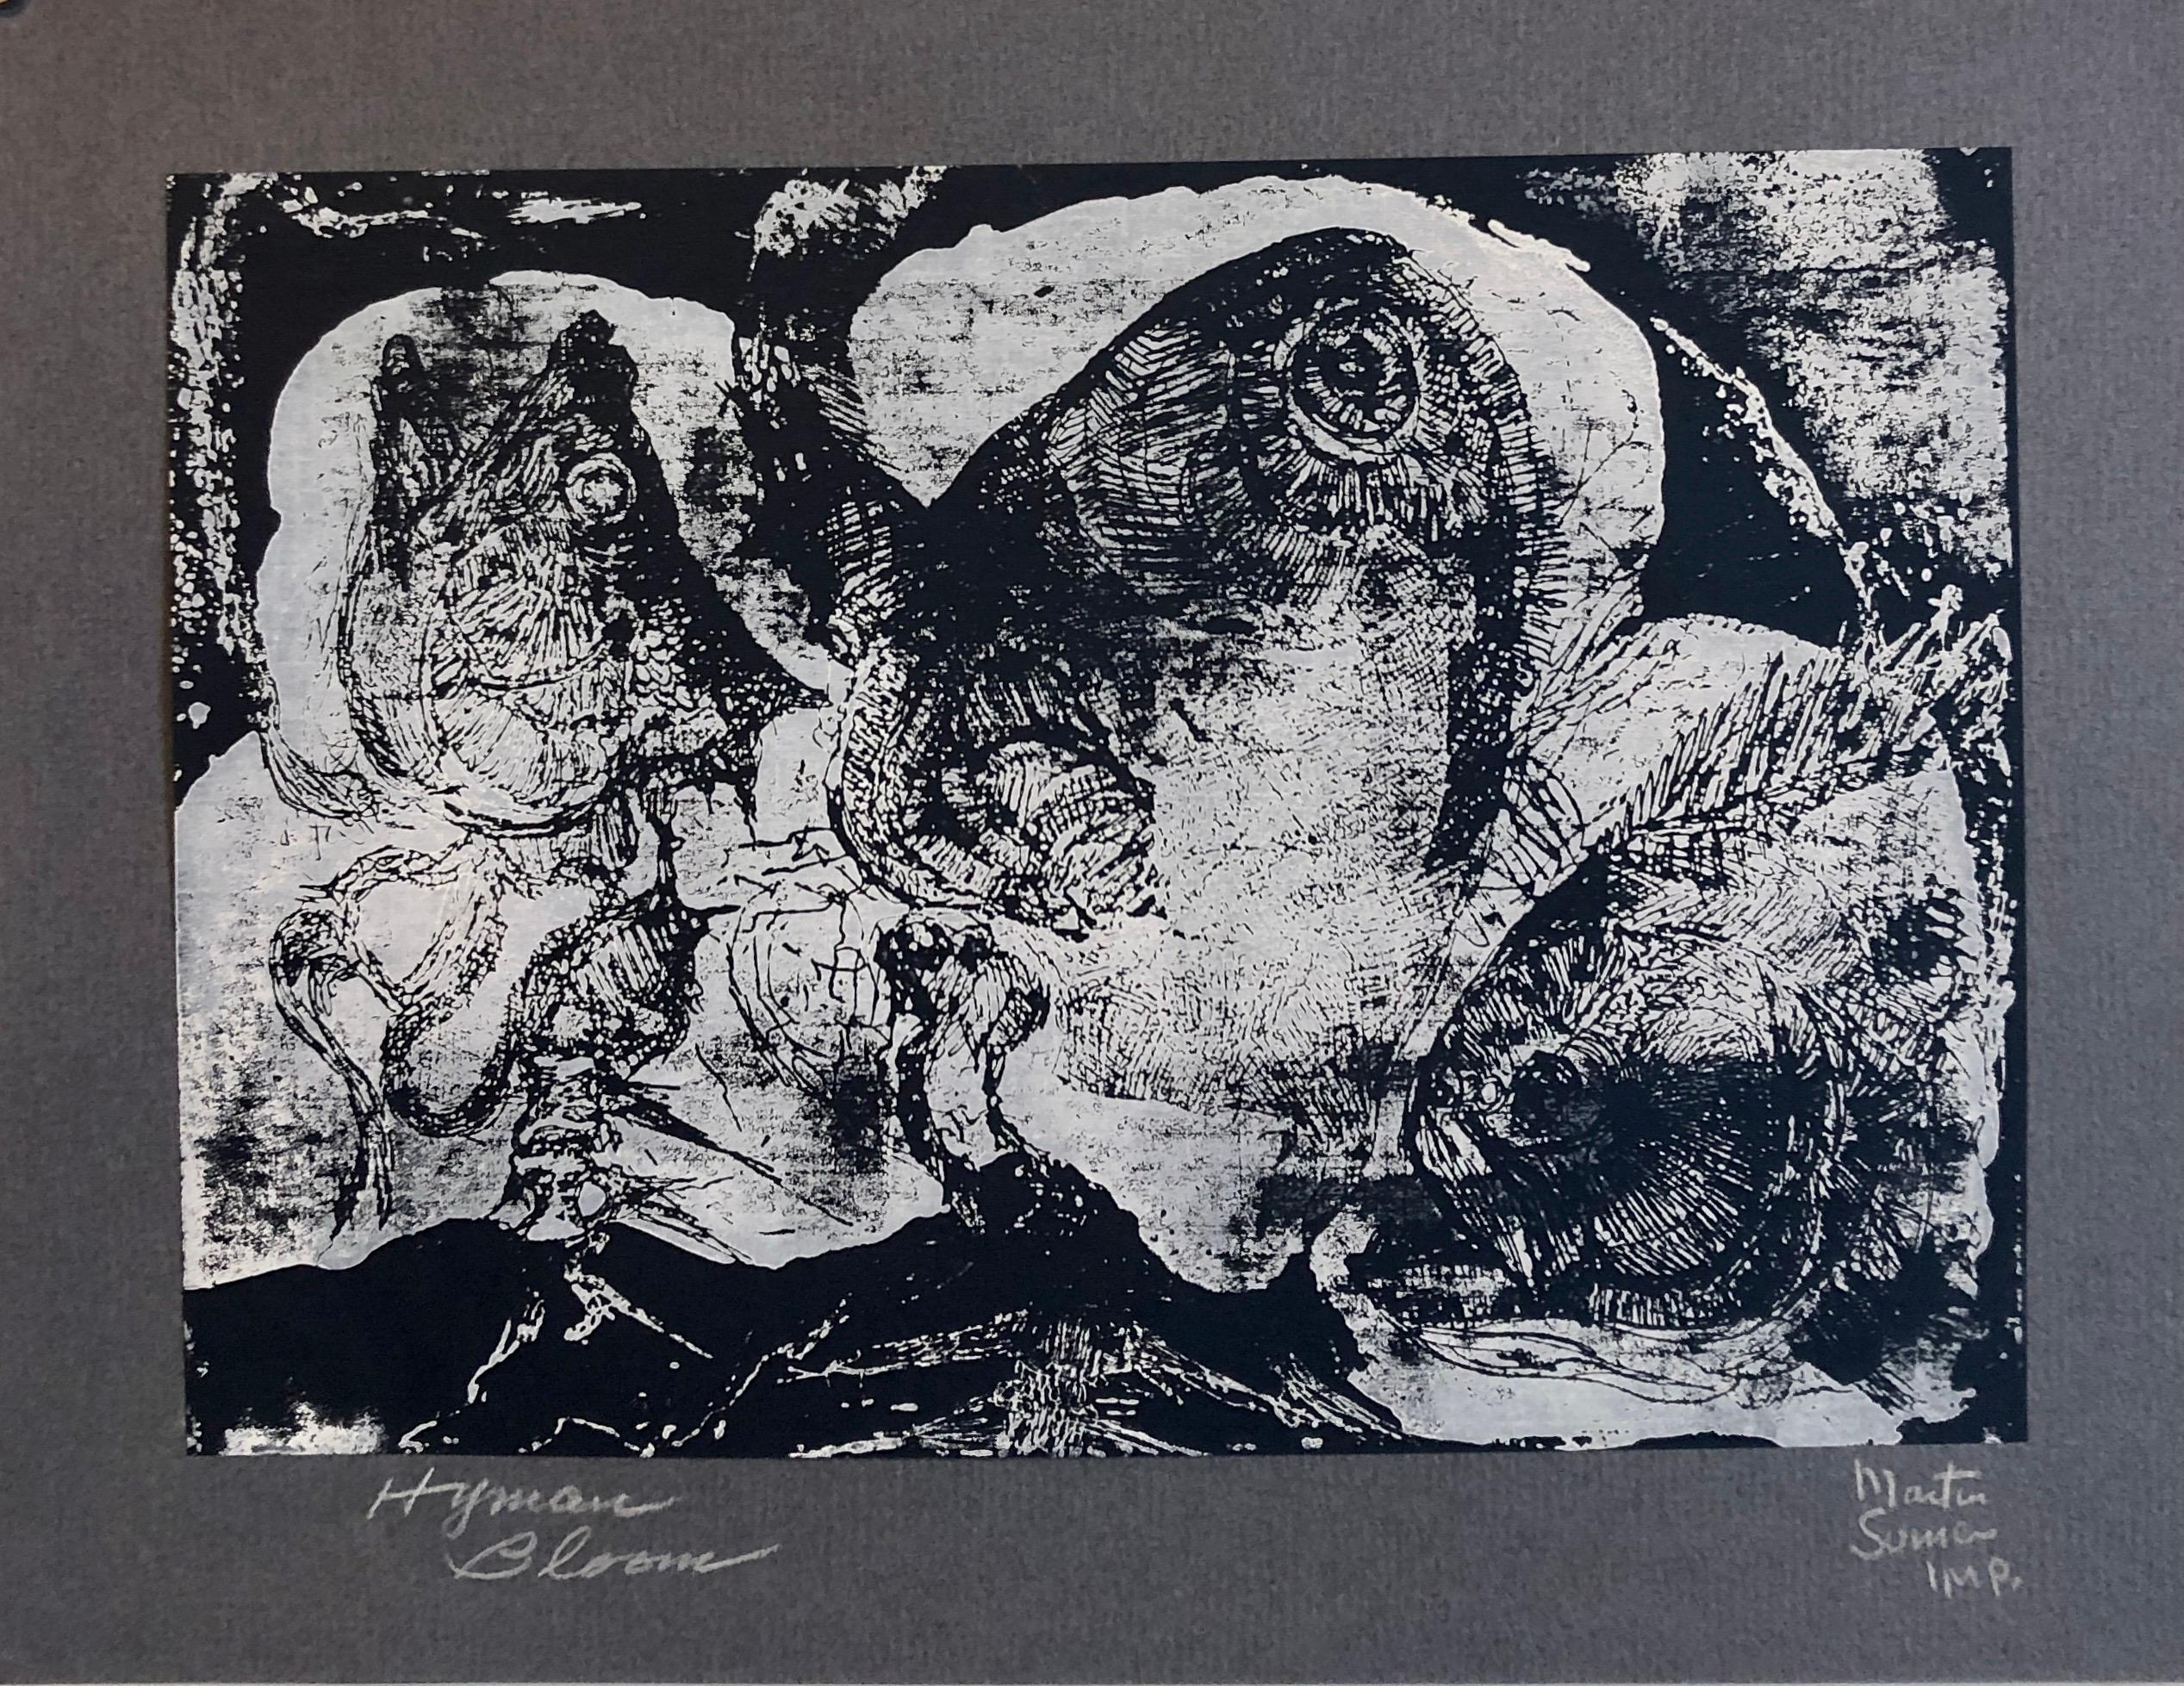 Boston Abstract Expressionist Hyman Bloom Monoprint Monotype Print Martin Sumers